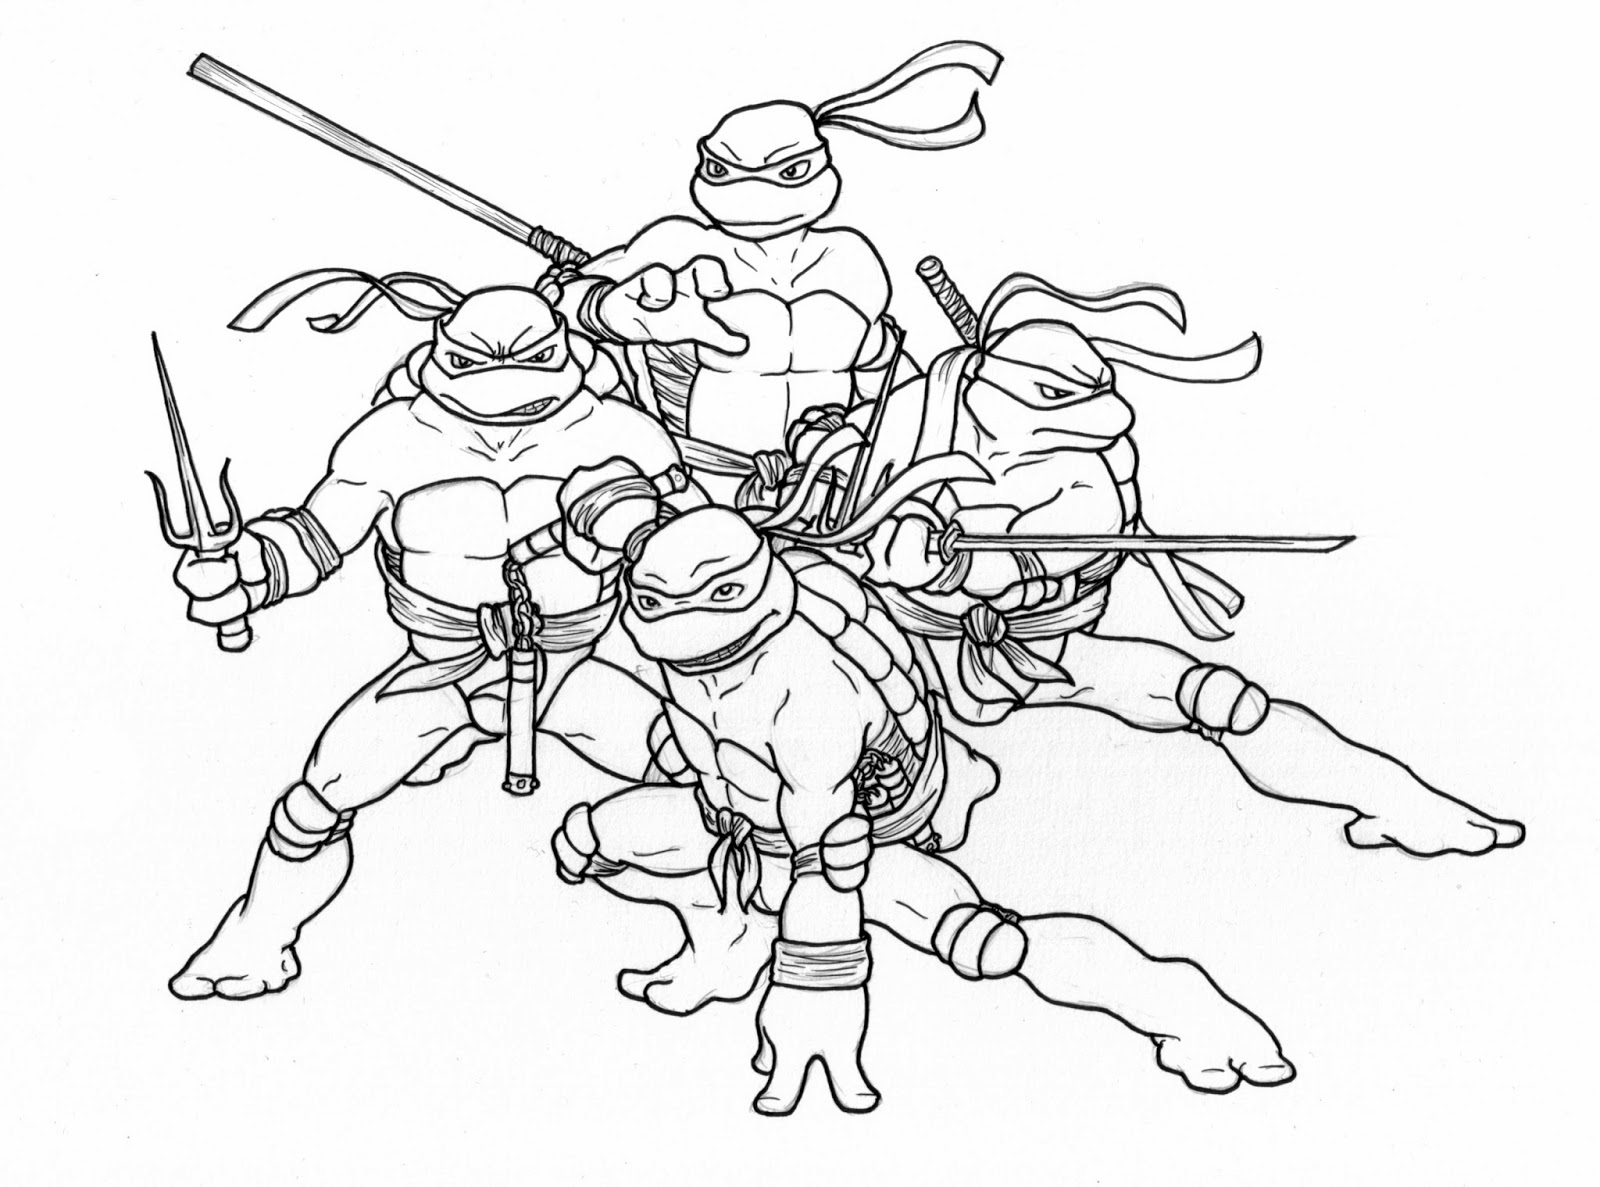 t ninja turtles coloring pages - photo #20